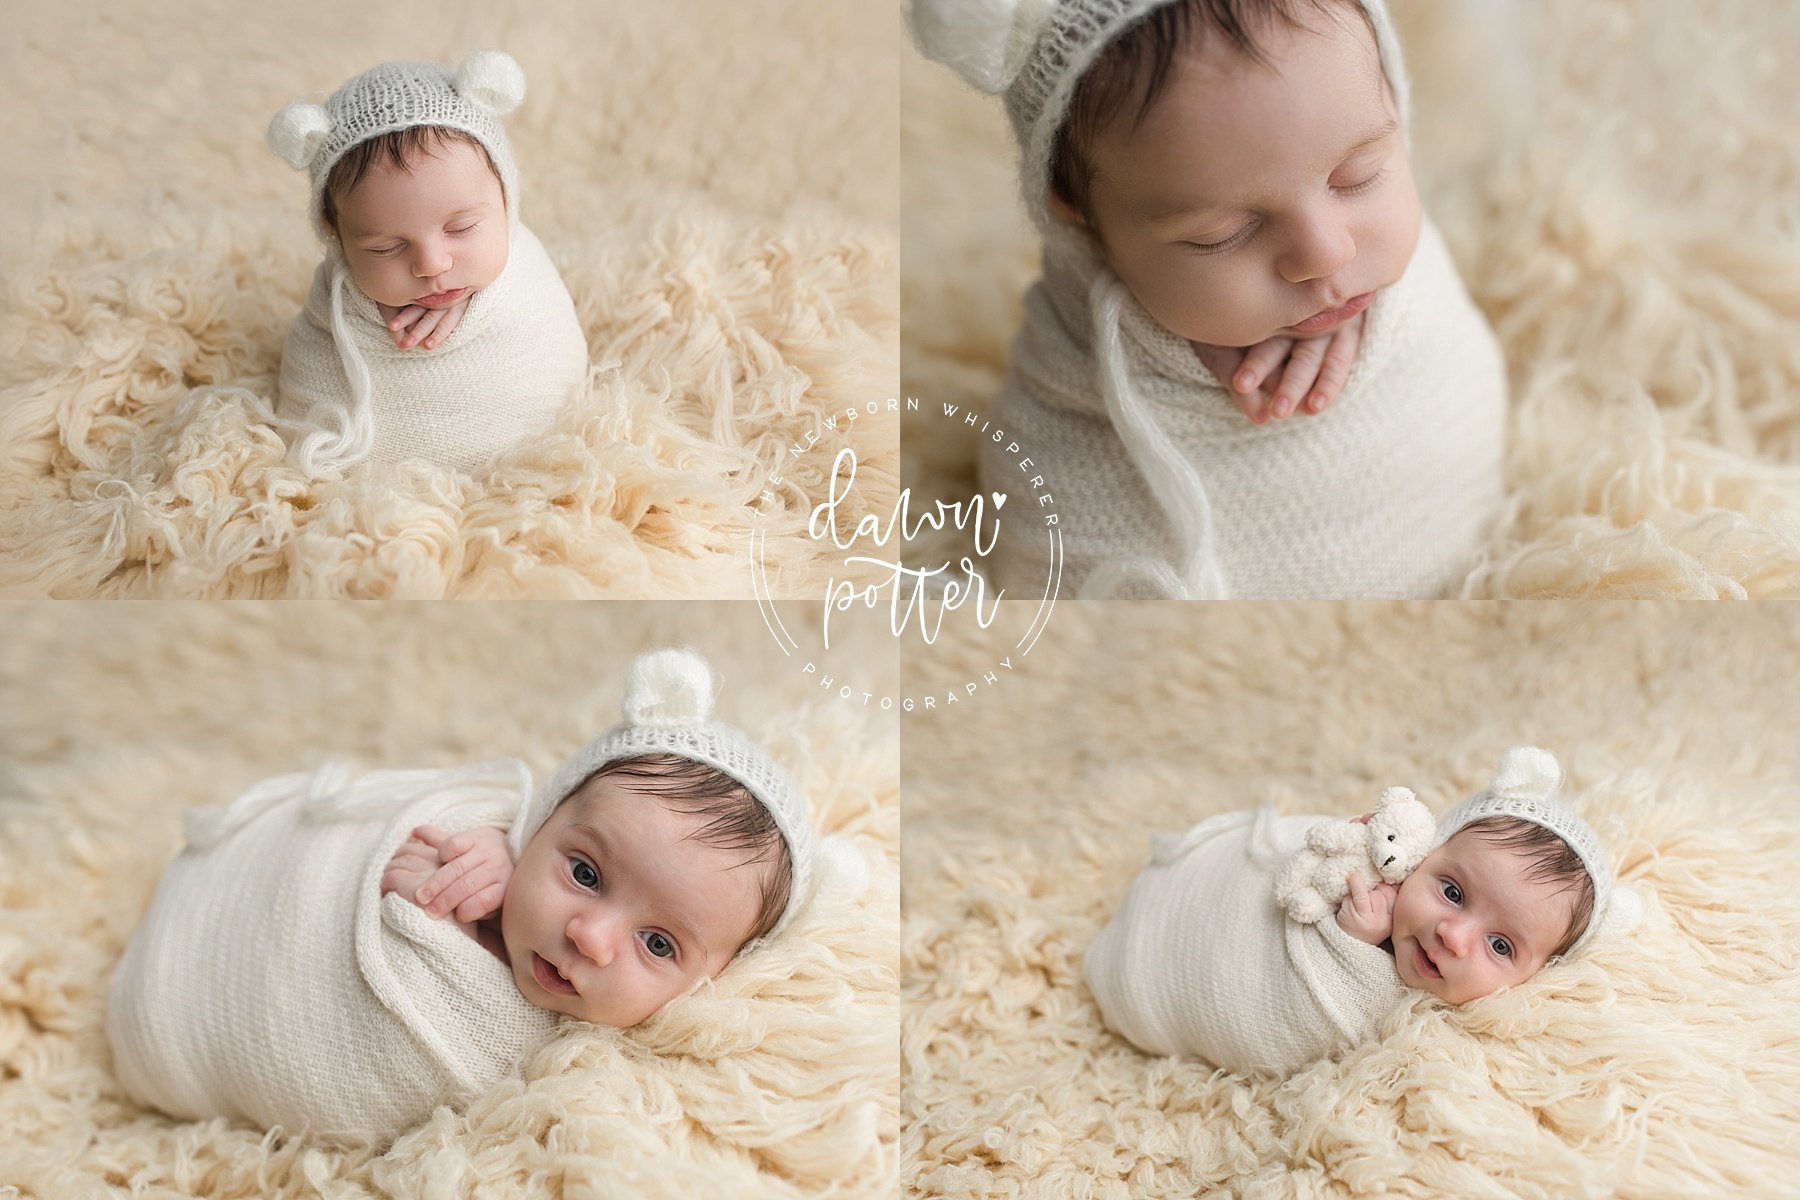 Kirkland baby photographer dawn potter photography